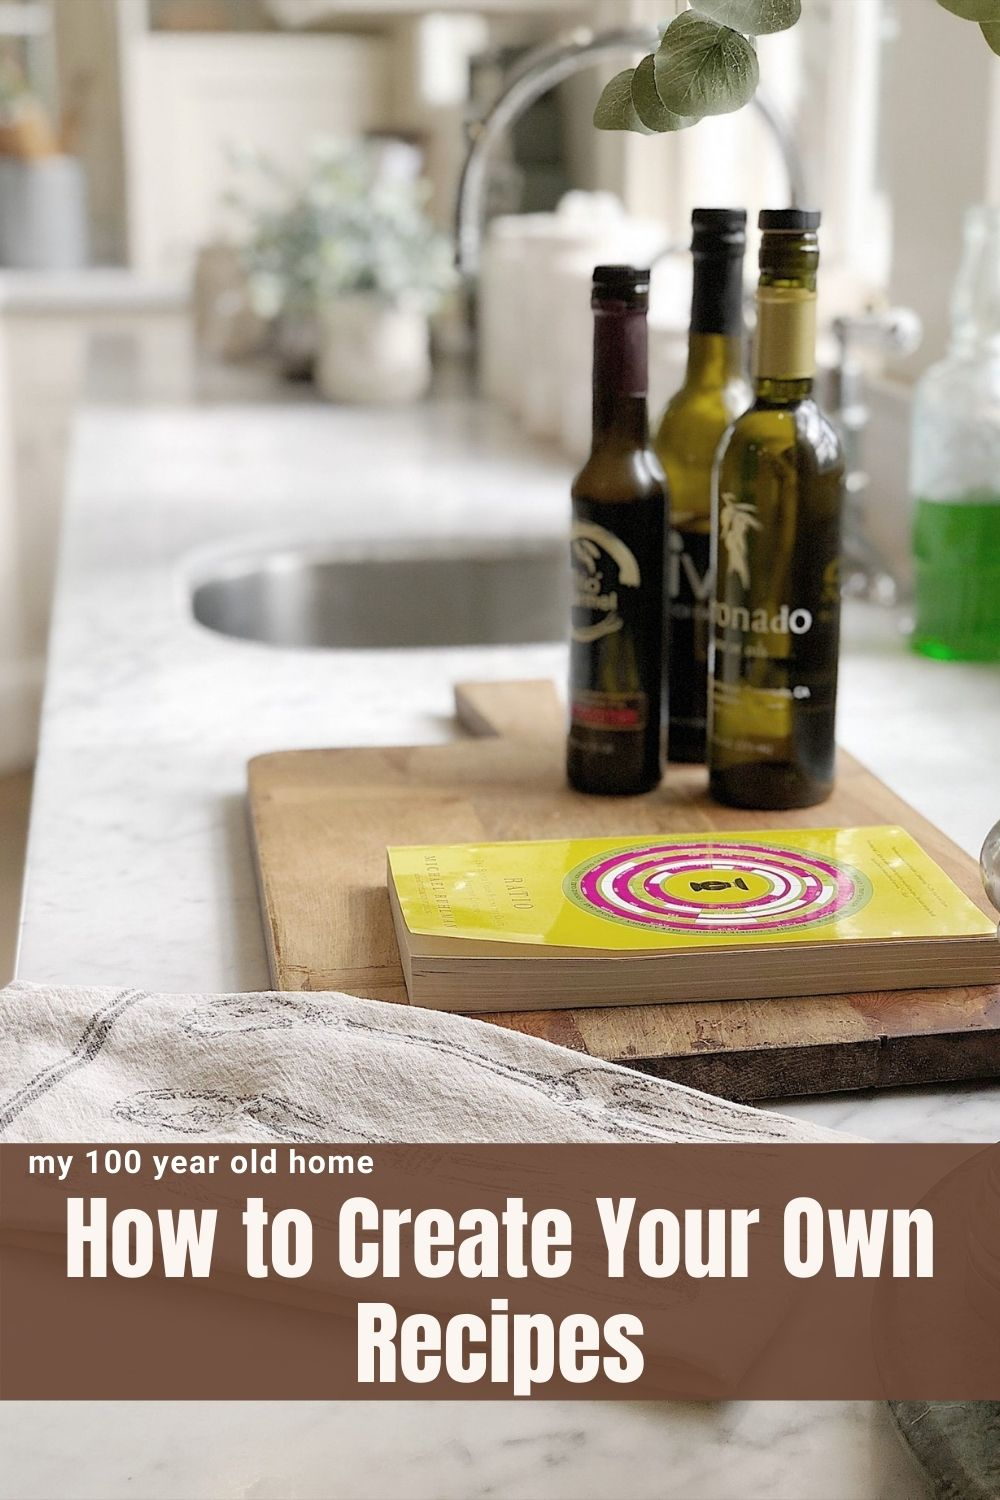 Are you tired of cooking by the book? Or even afraid to write your own recipes? Today I have tips to create your own recipes.